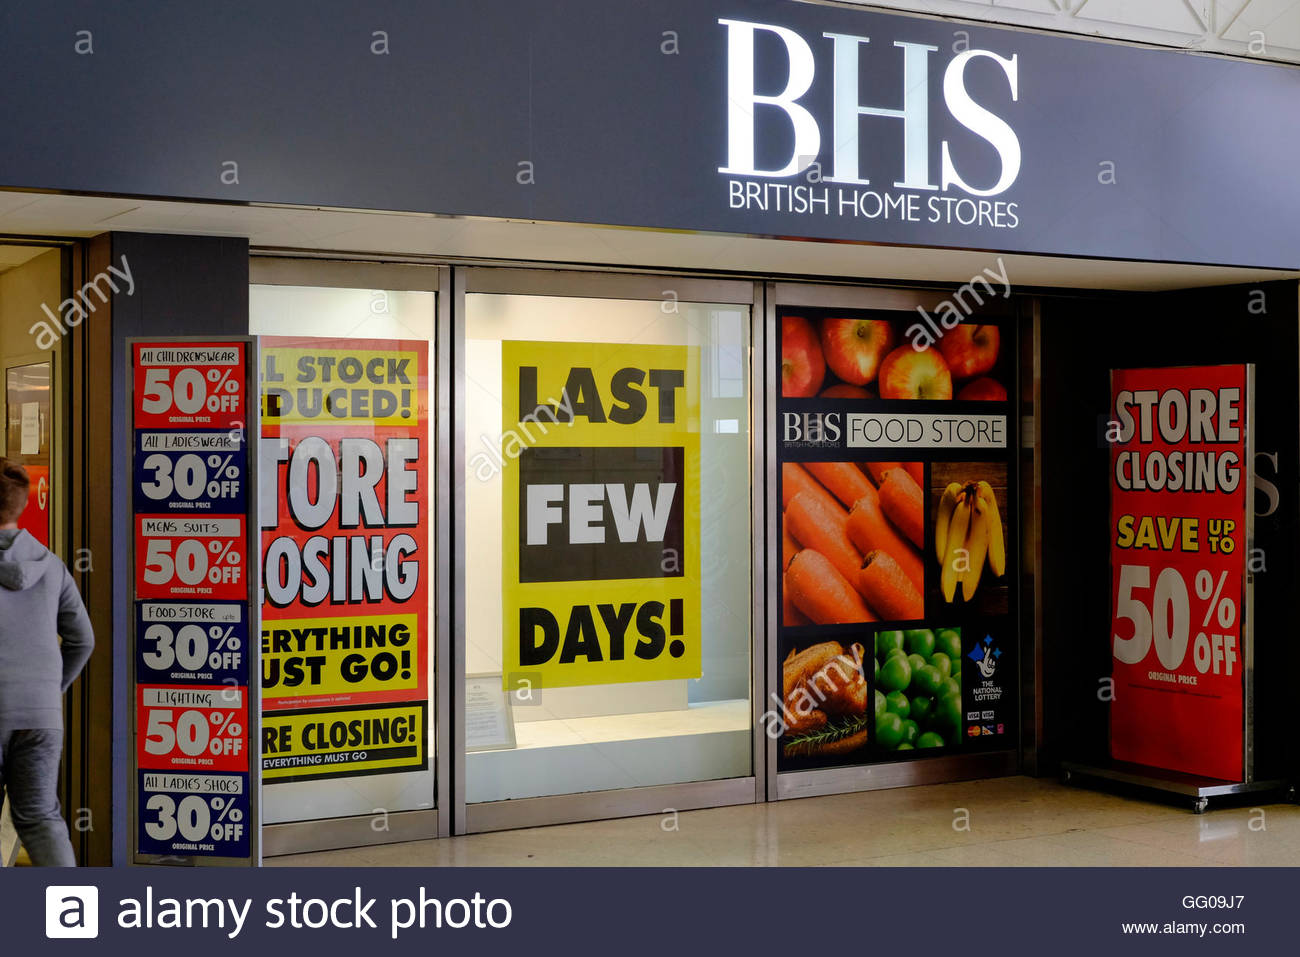 Nottingham, England, 3 August 2016  BHS Nottingham closes today Credit:  M-dash/Alamy Live News - Stock Image